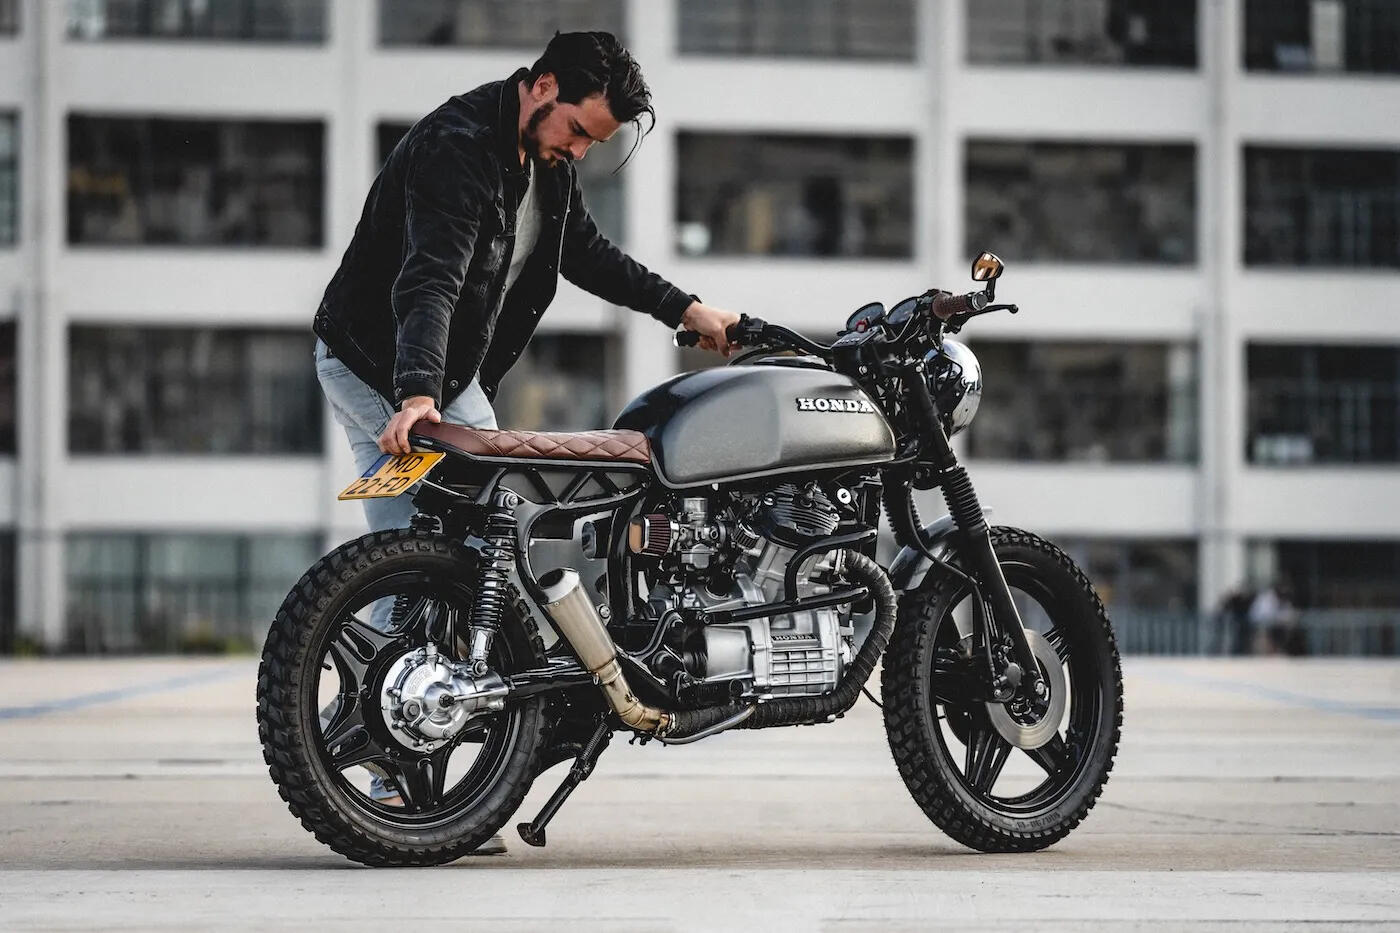 metcha Guide-for-the-ideal-bike-customization inner 14 - IMAGE